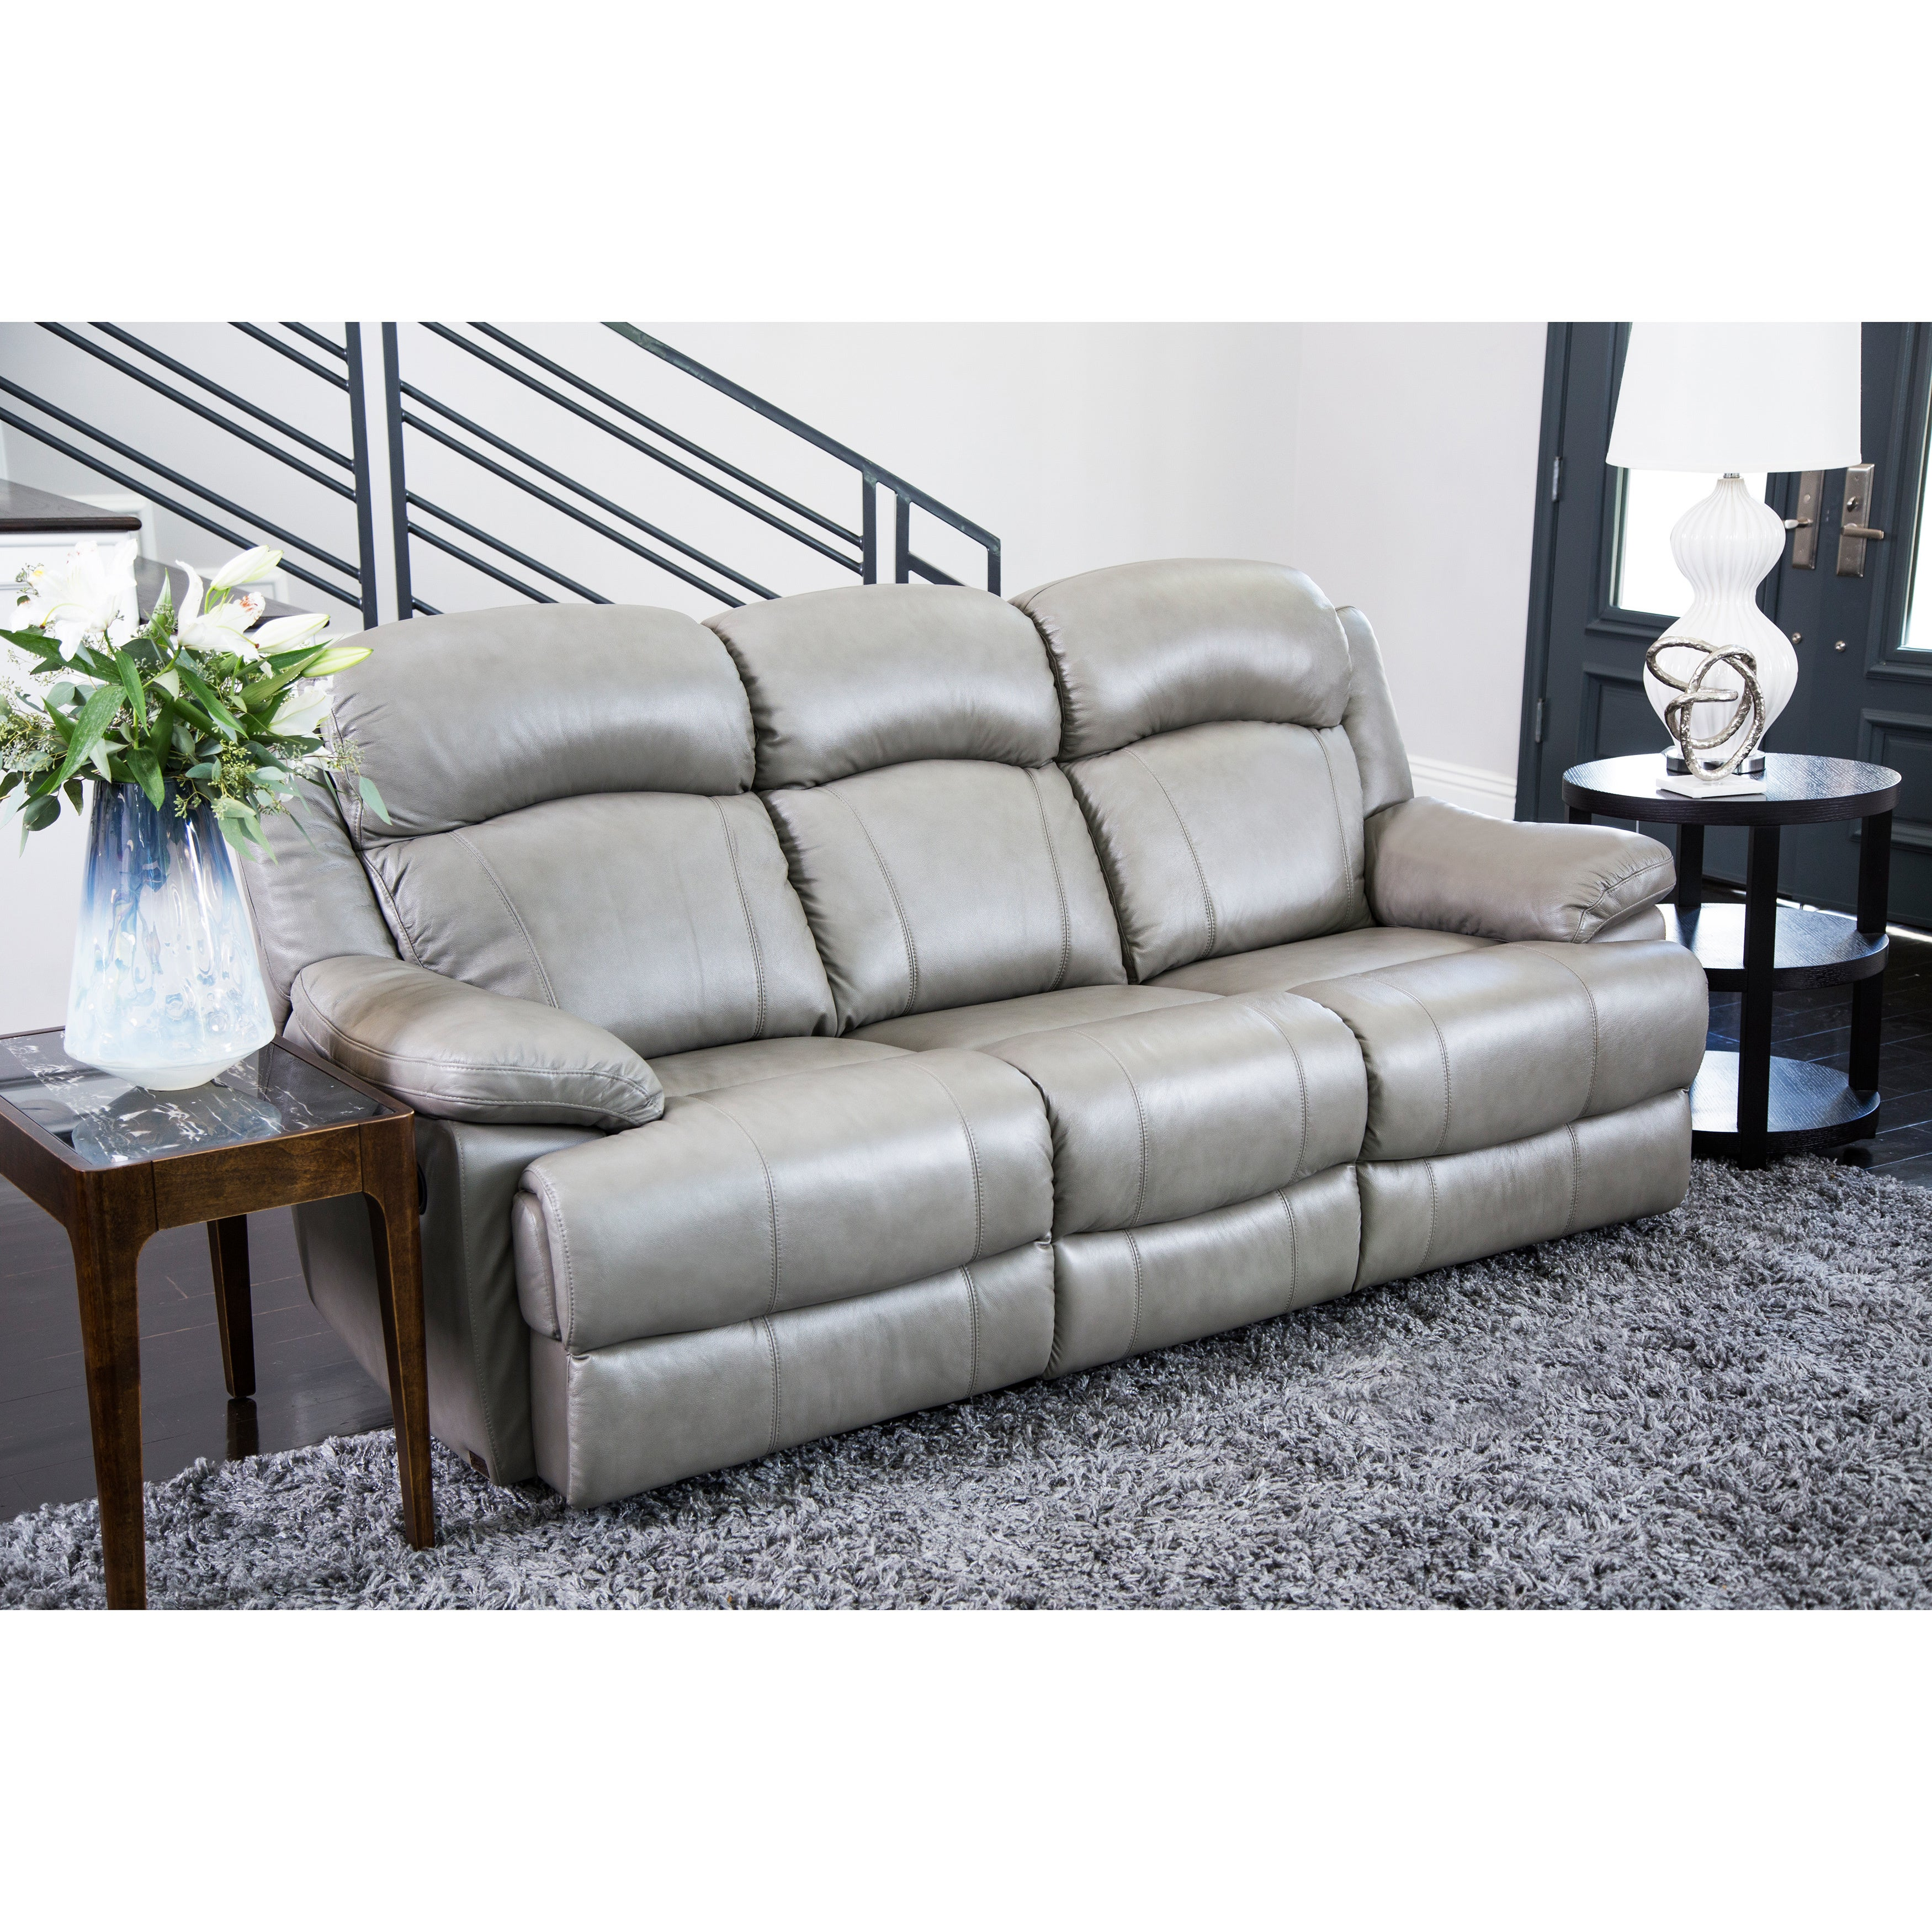 Abbyson Clarence Top Grain Leather Reclining 2 Piece Living Room Set ...